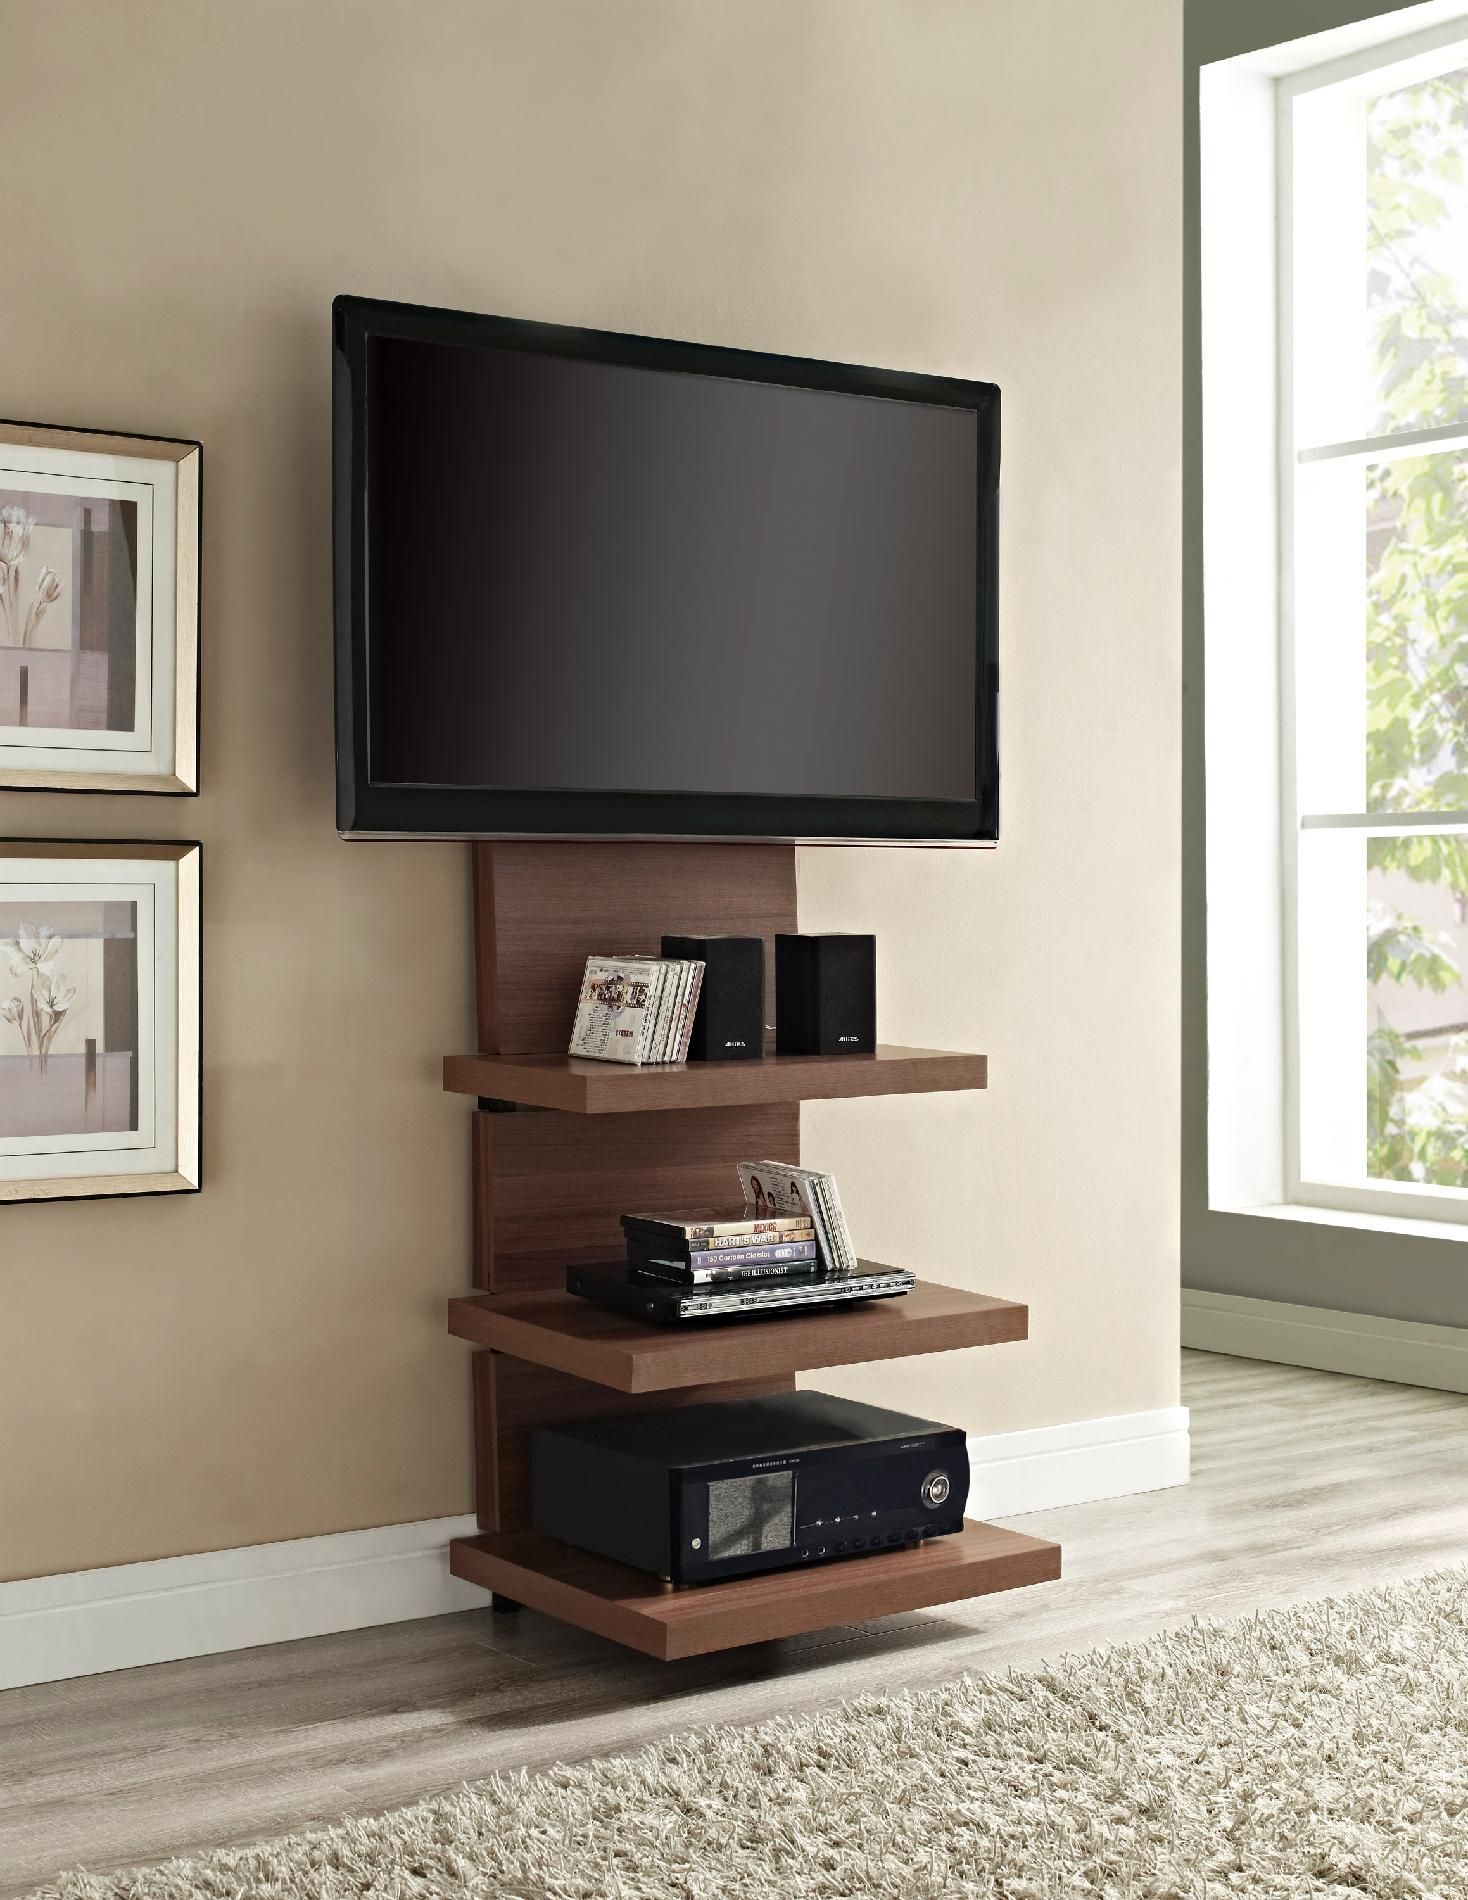 Hide Tv Furniture. Chic And Modern Tv Wall Mount Ideas For Living Room Hide  Tv